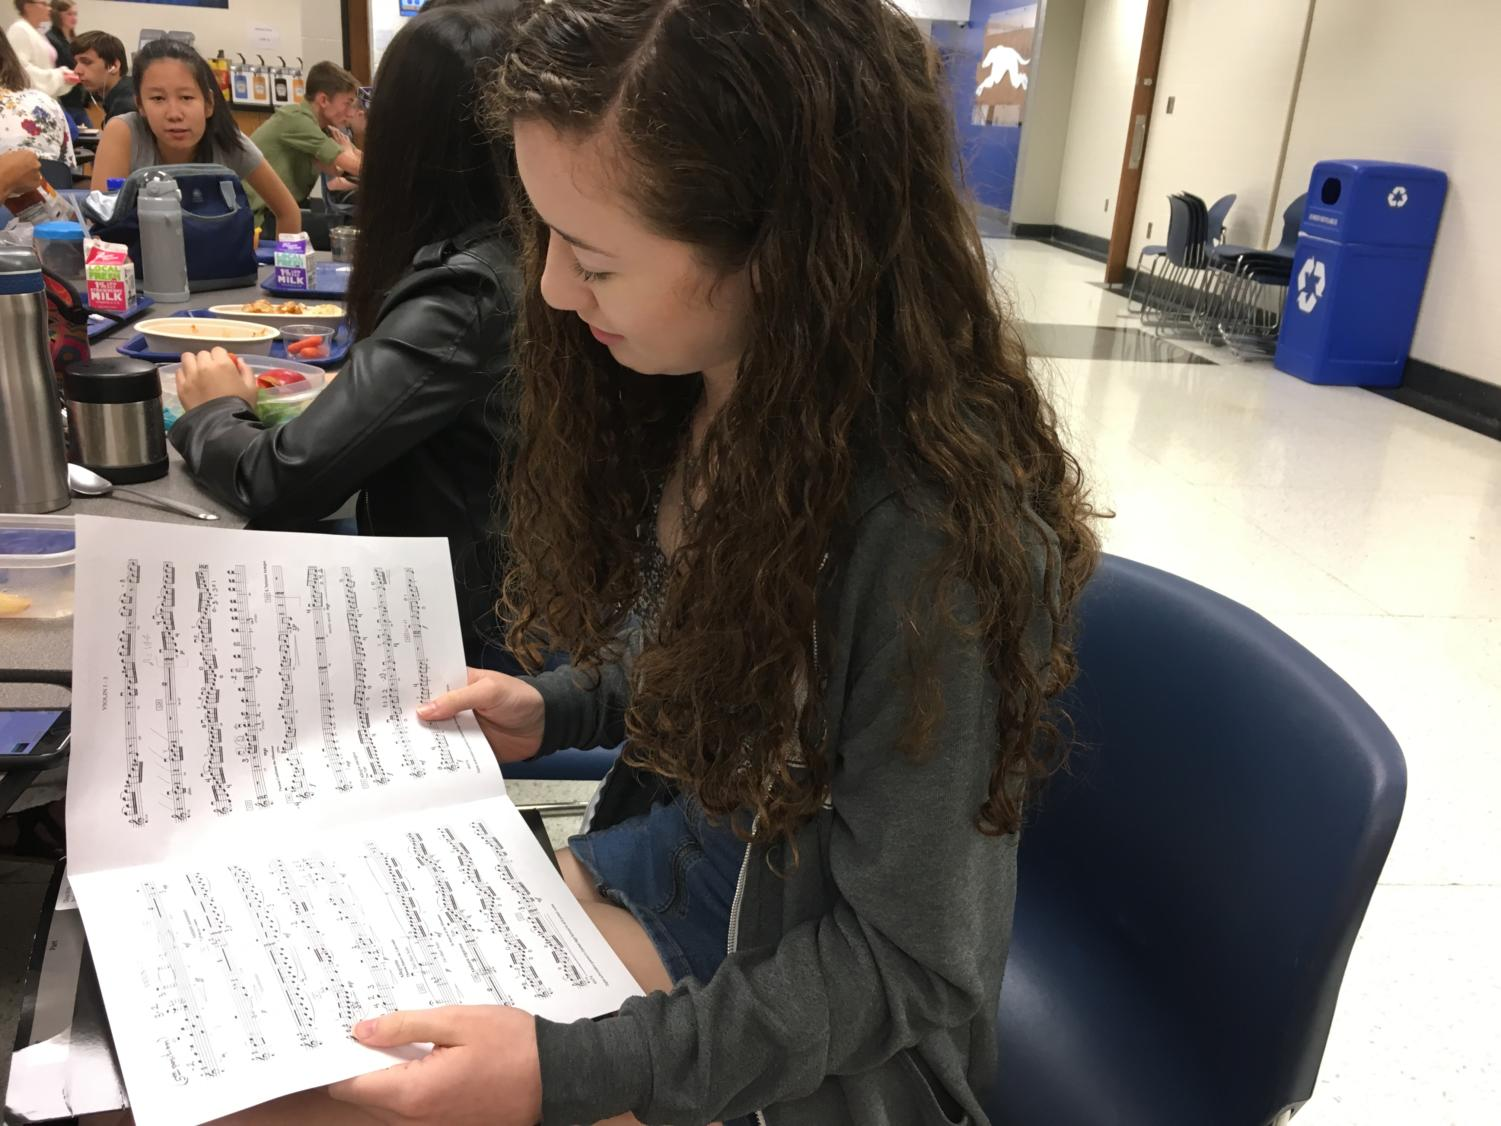 Olivia White, Philharmonic Orchestra member and junior, looks over her concert music. White said she has been recording herself practicing the music to keep track of her progress and use different practice techniques.